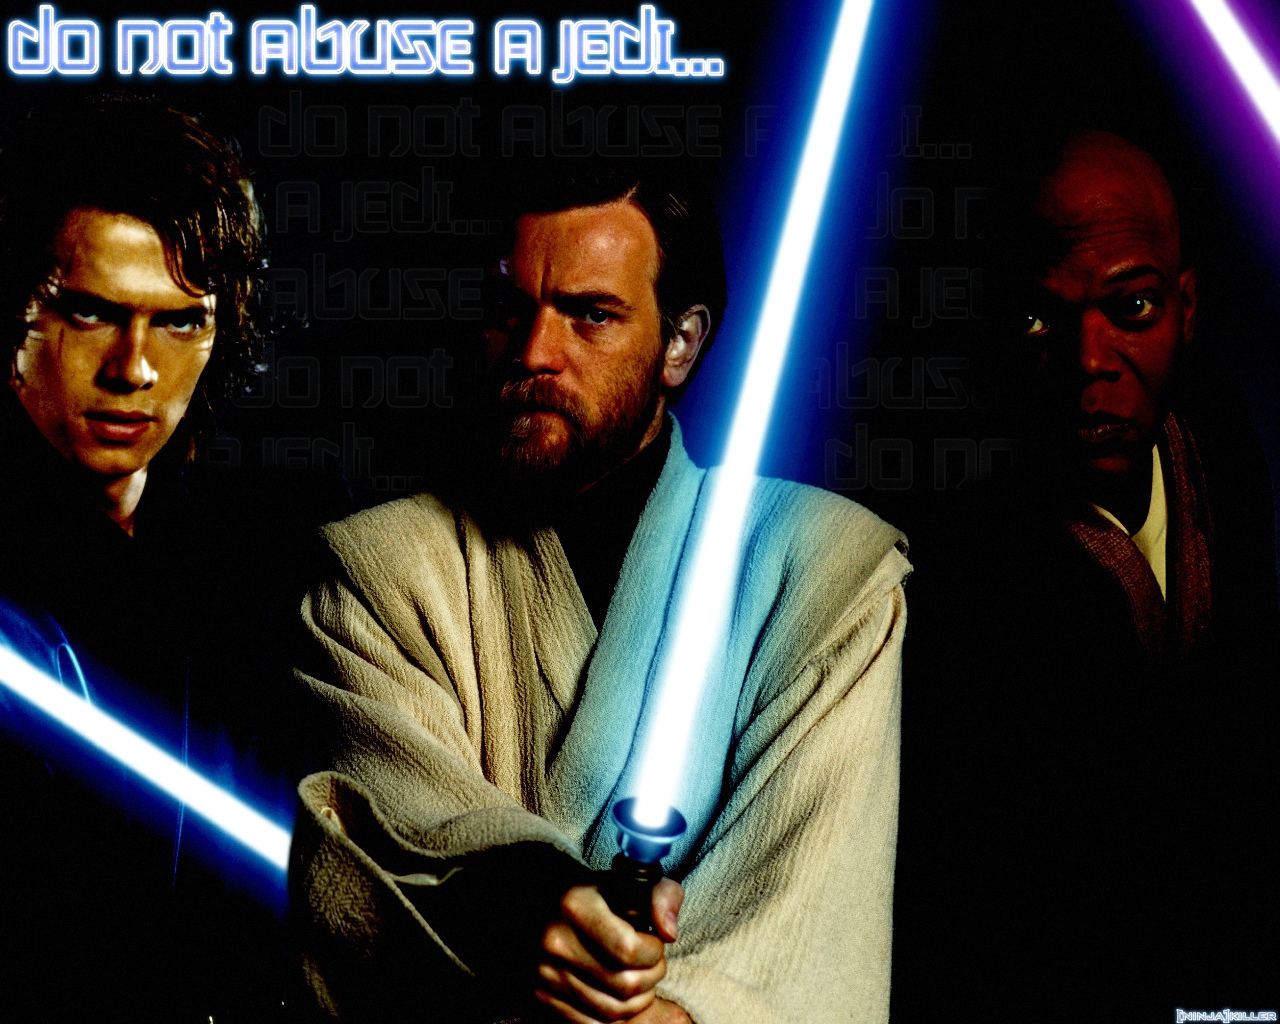 AnakinObi Wan Kenobi and Mace Windu   Obi Wan Kenobi Photo 1280x1024